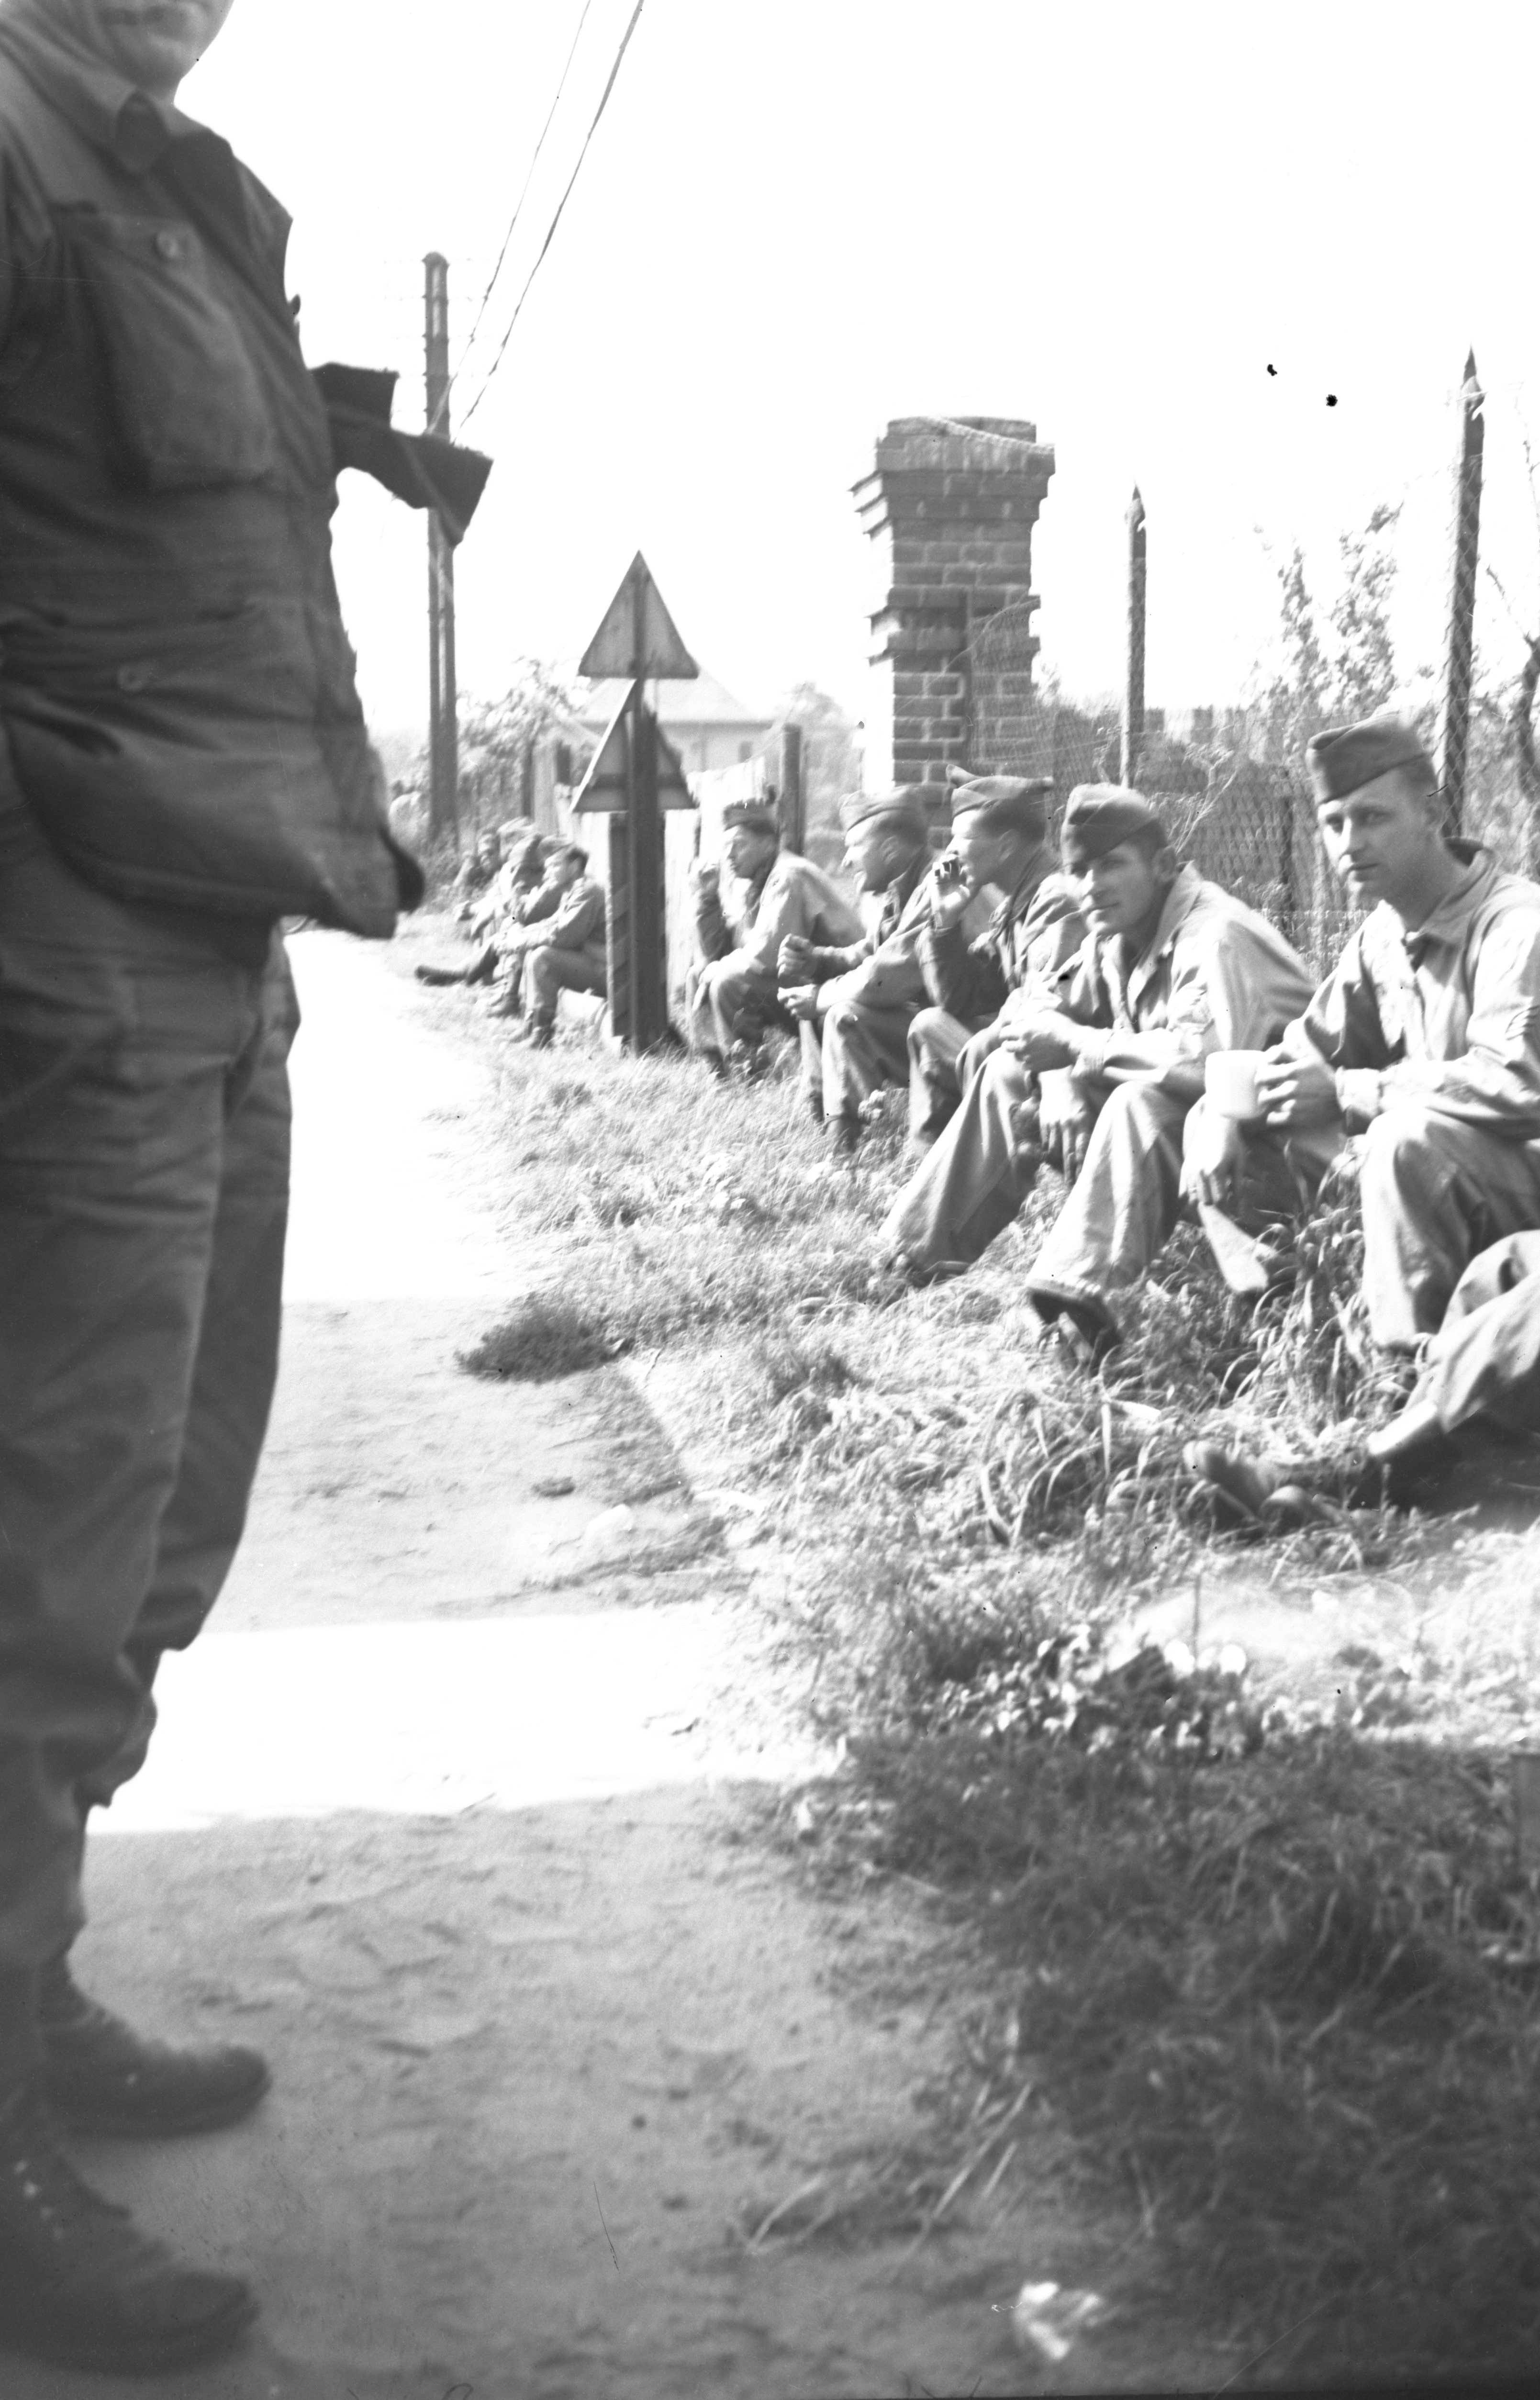 hotos taken by TSGT Gordon Ketchpaw, Germany 1945. Courtesy Dave Ketchpaw